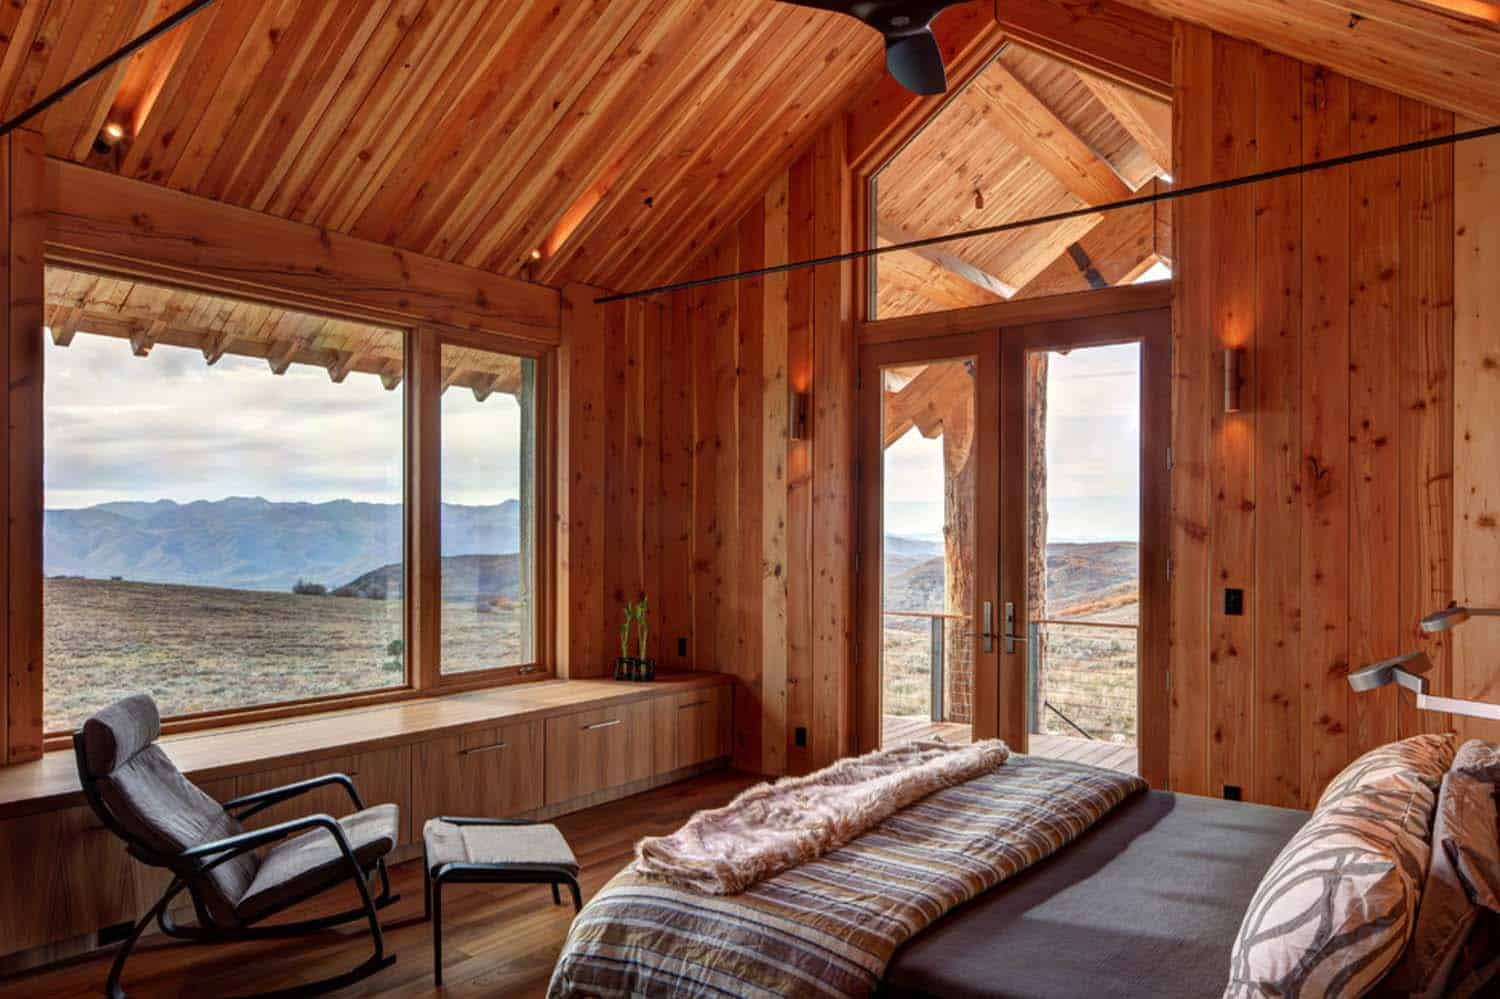 Modern Rustic Log Home-Shubin Donaldson Architects-20-1 Kindesign